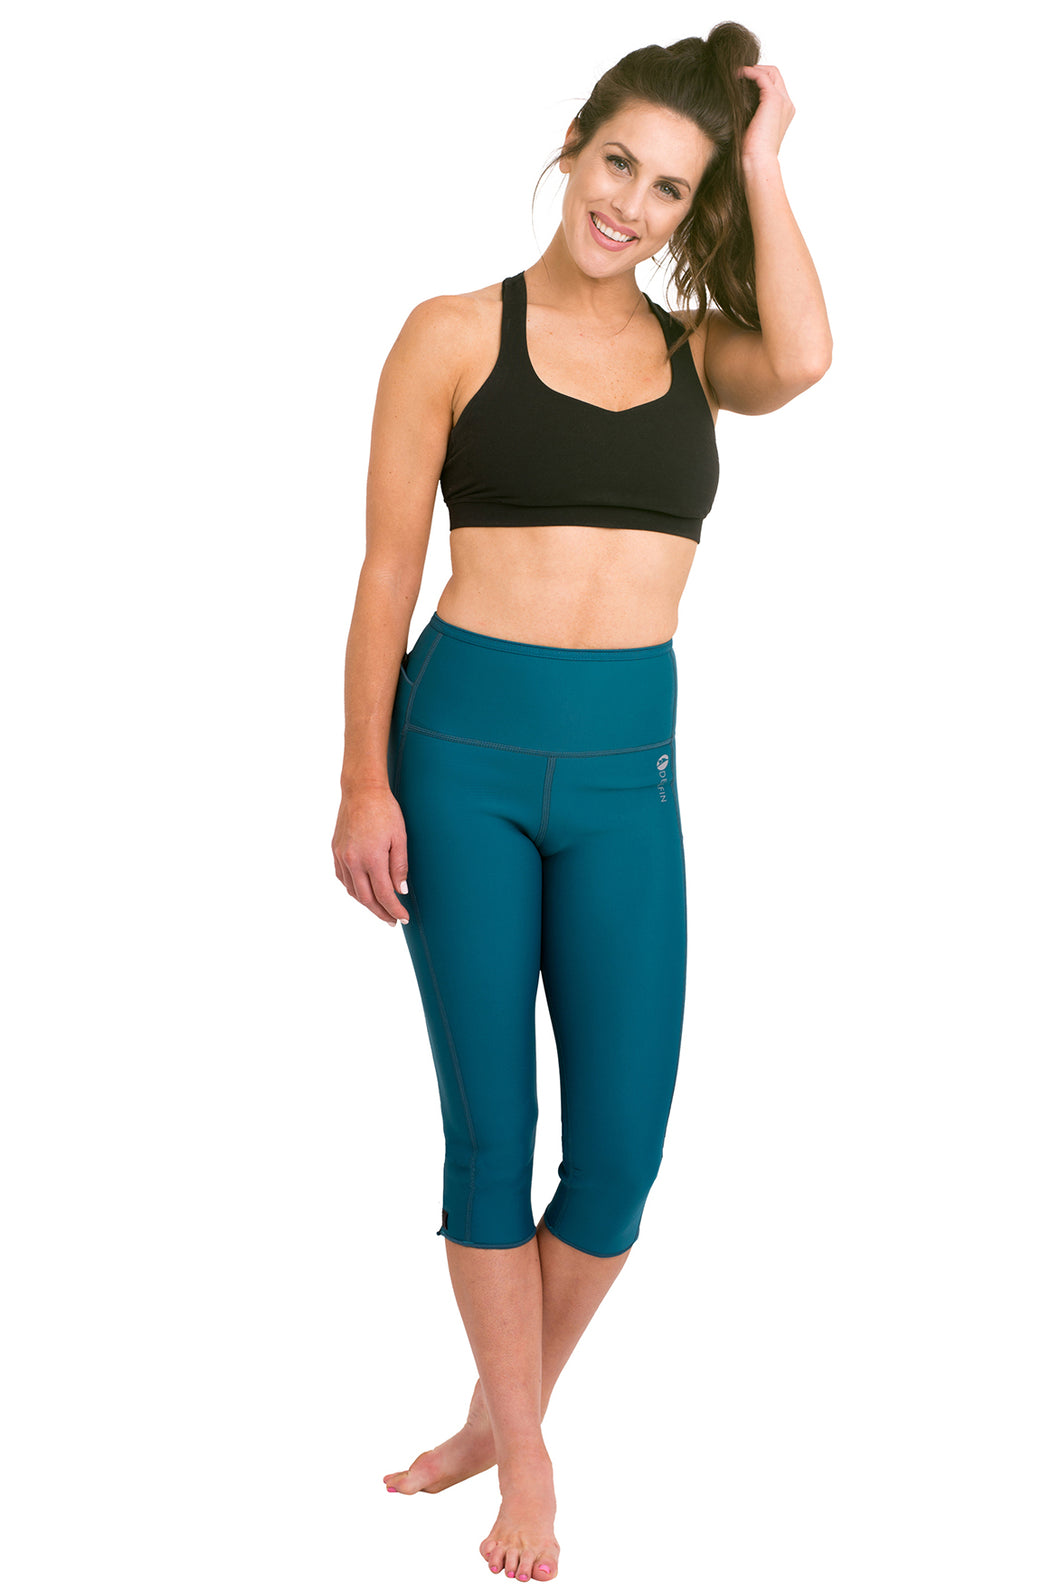 Heat Maximizing Capris - Teal